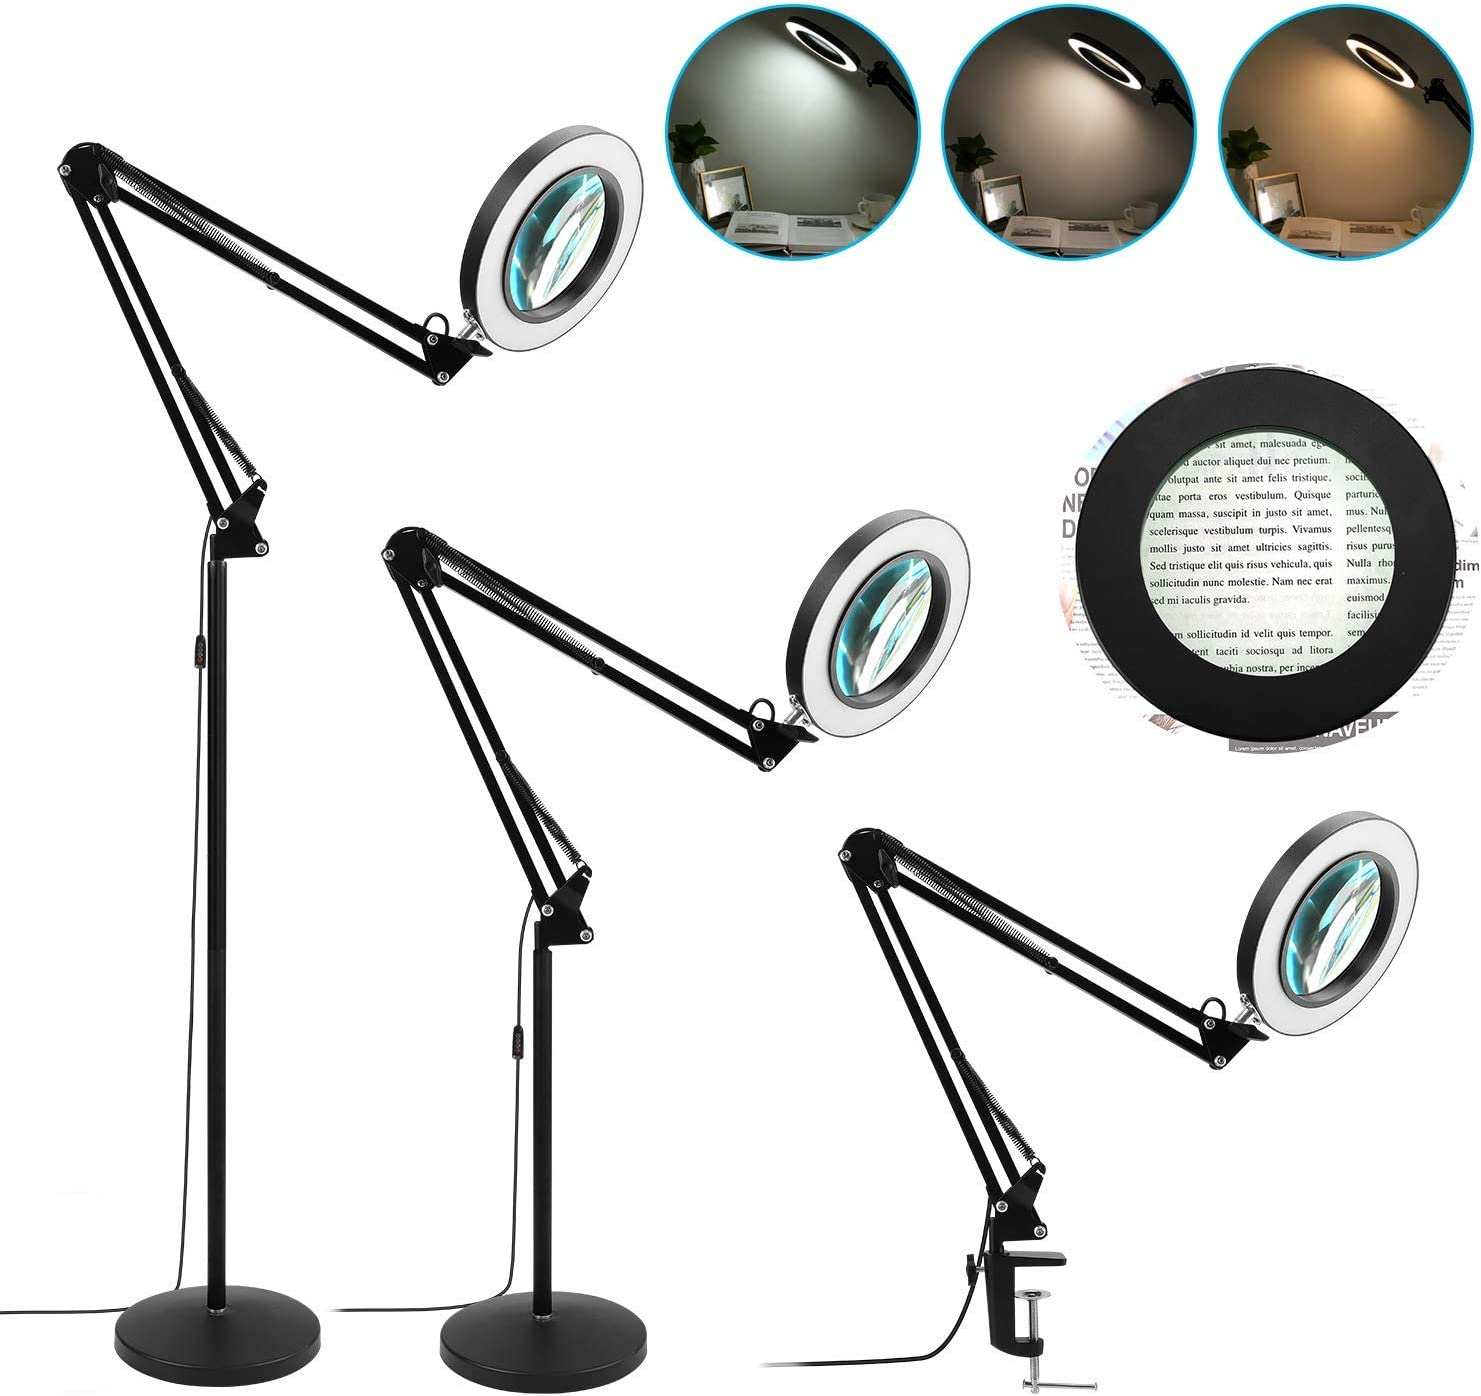 Magnifying Floor Lamp with Stand 8 Lens supreme - 5X Glass Albuquerque Mall Diopter Real